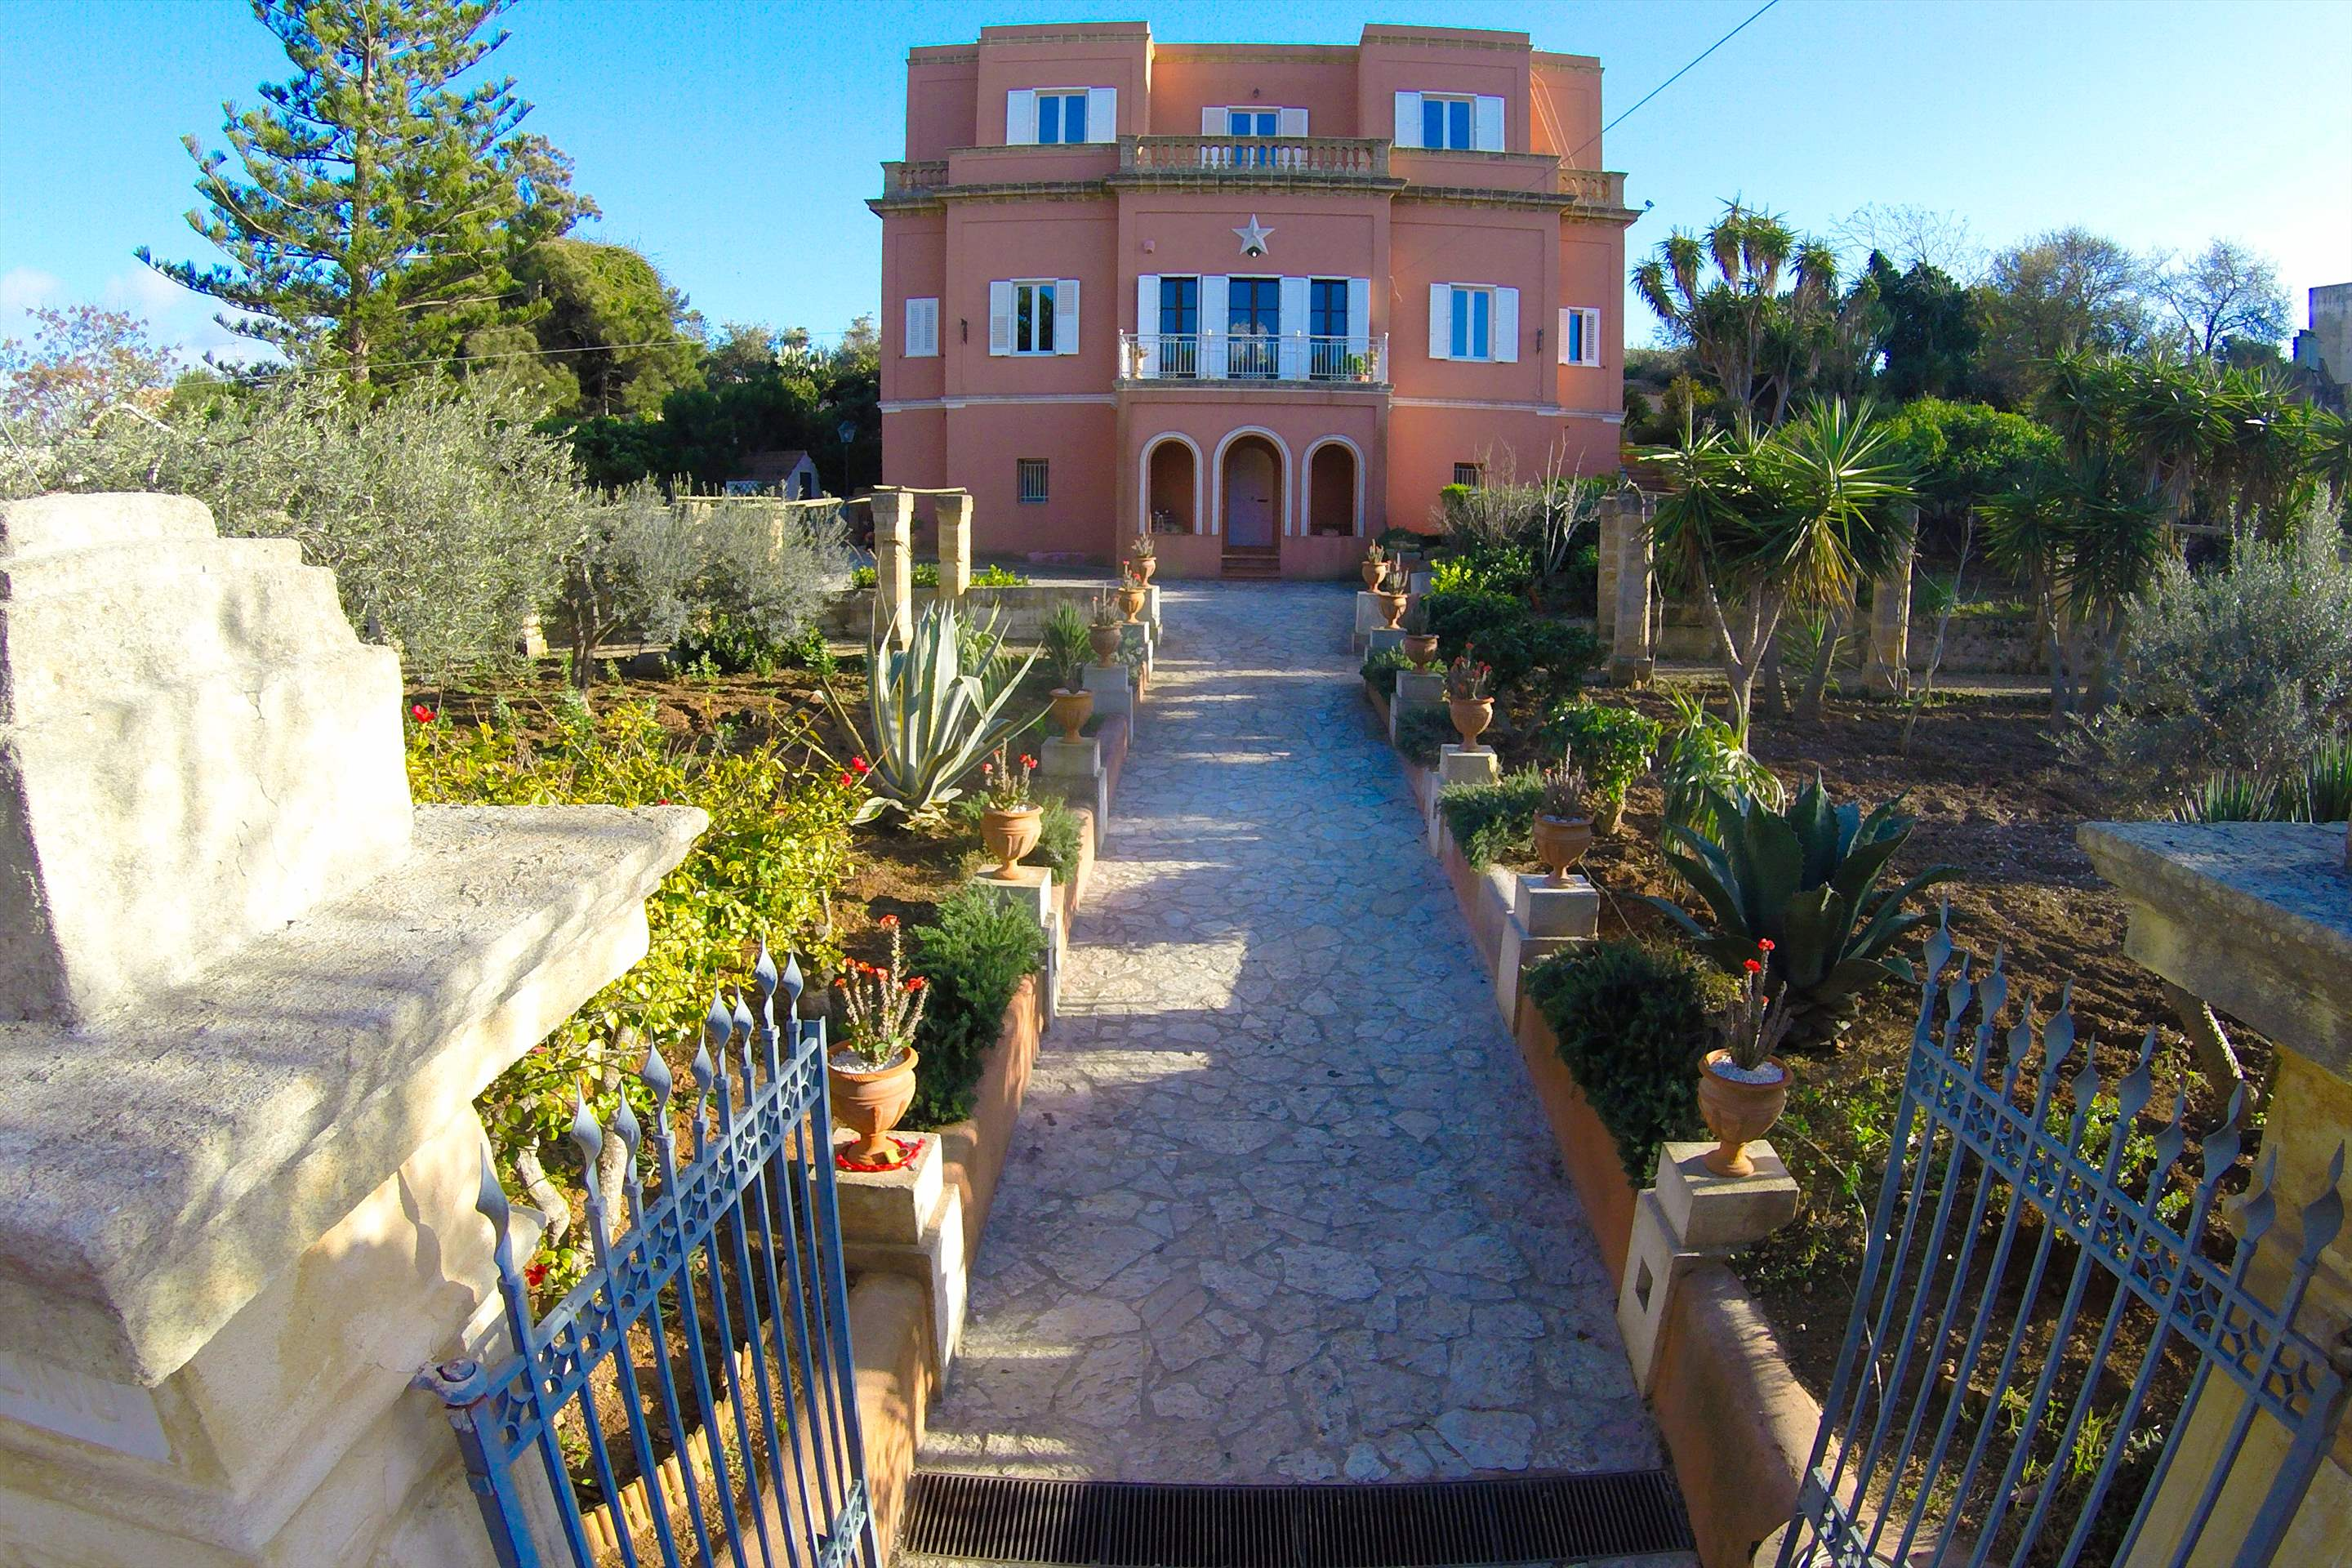 Villa Maria, 4 bedroom villa in Western Sicily, Sicily Photo #7